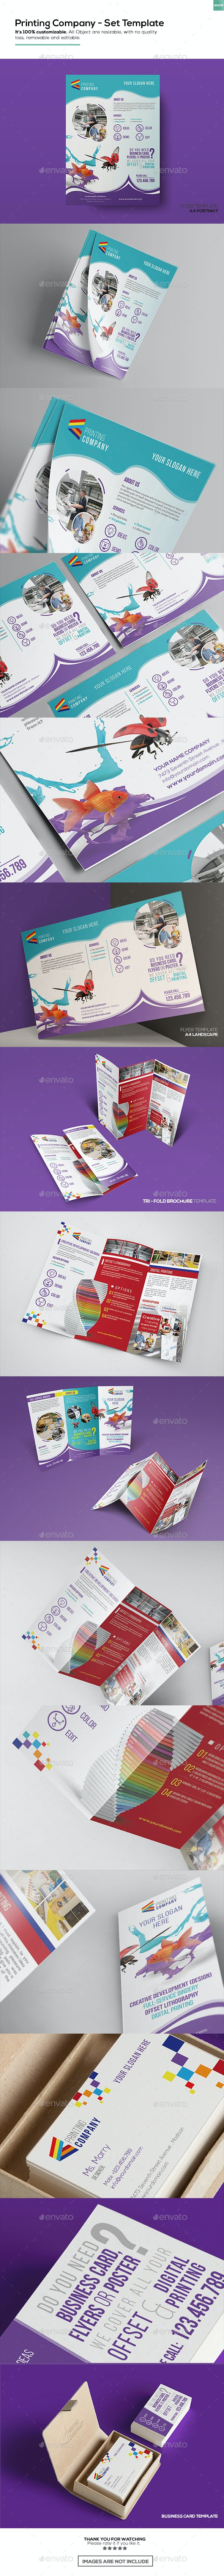 Printing Company - Set Template - Corporate Flyers